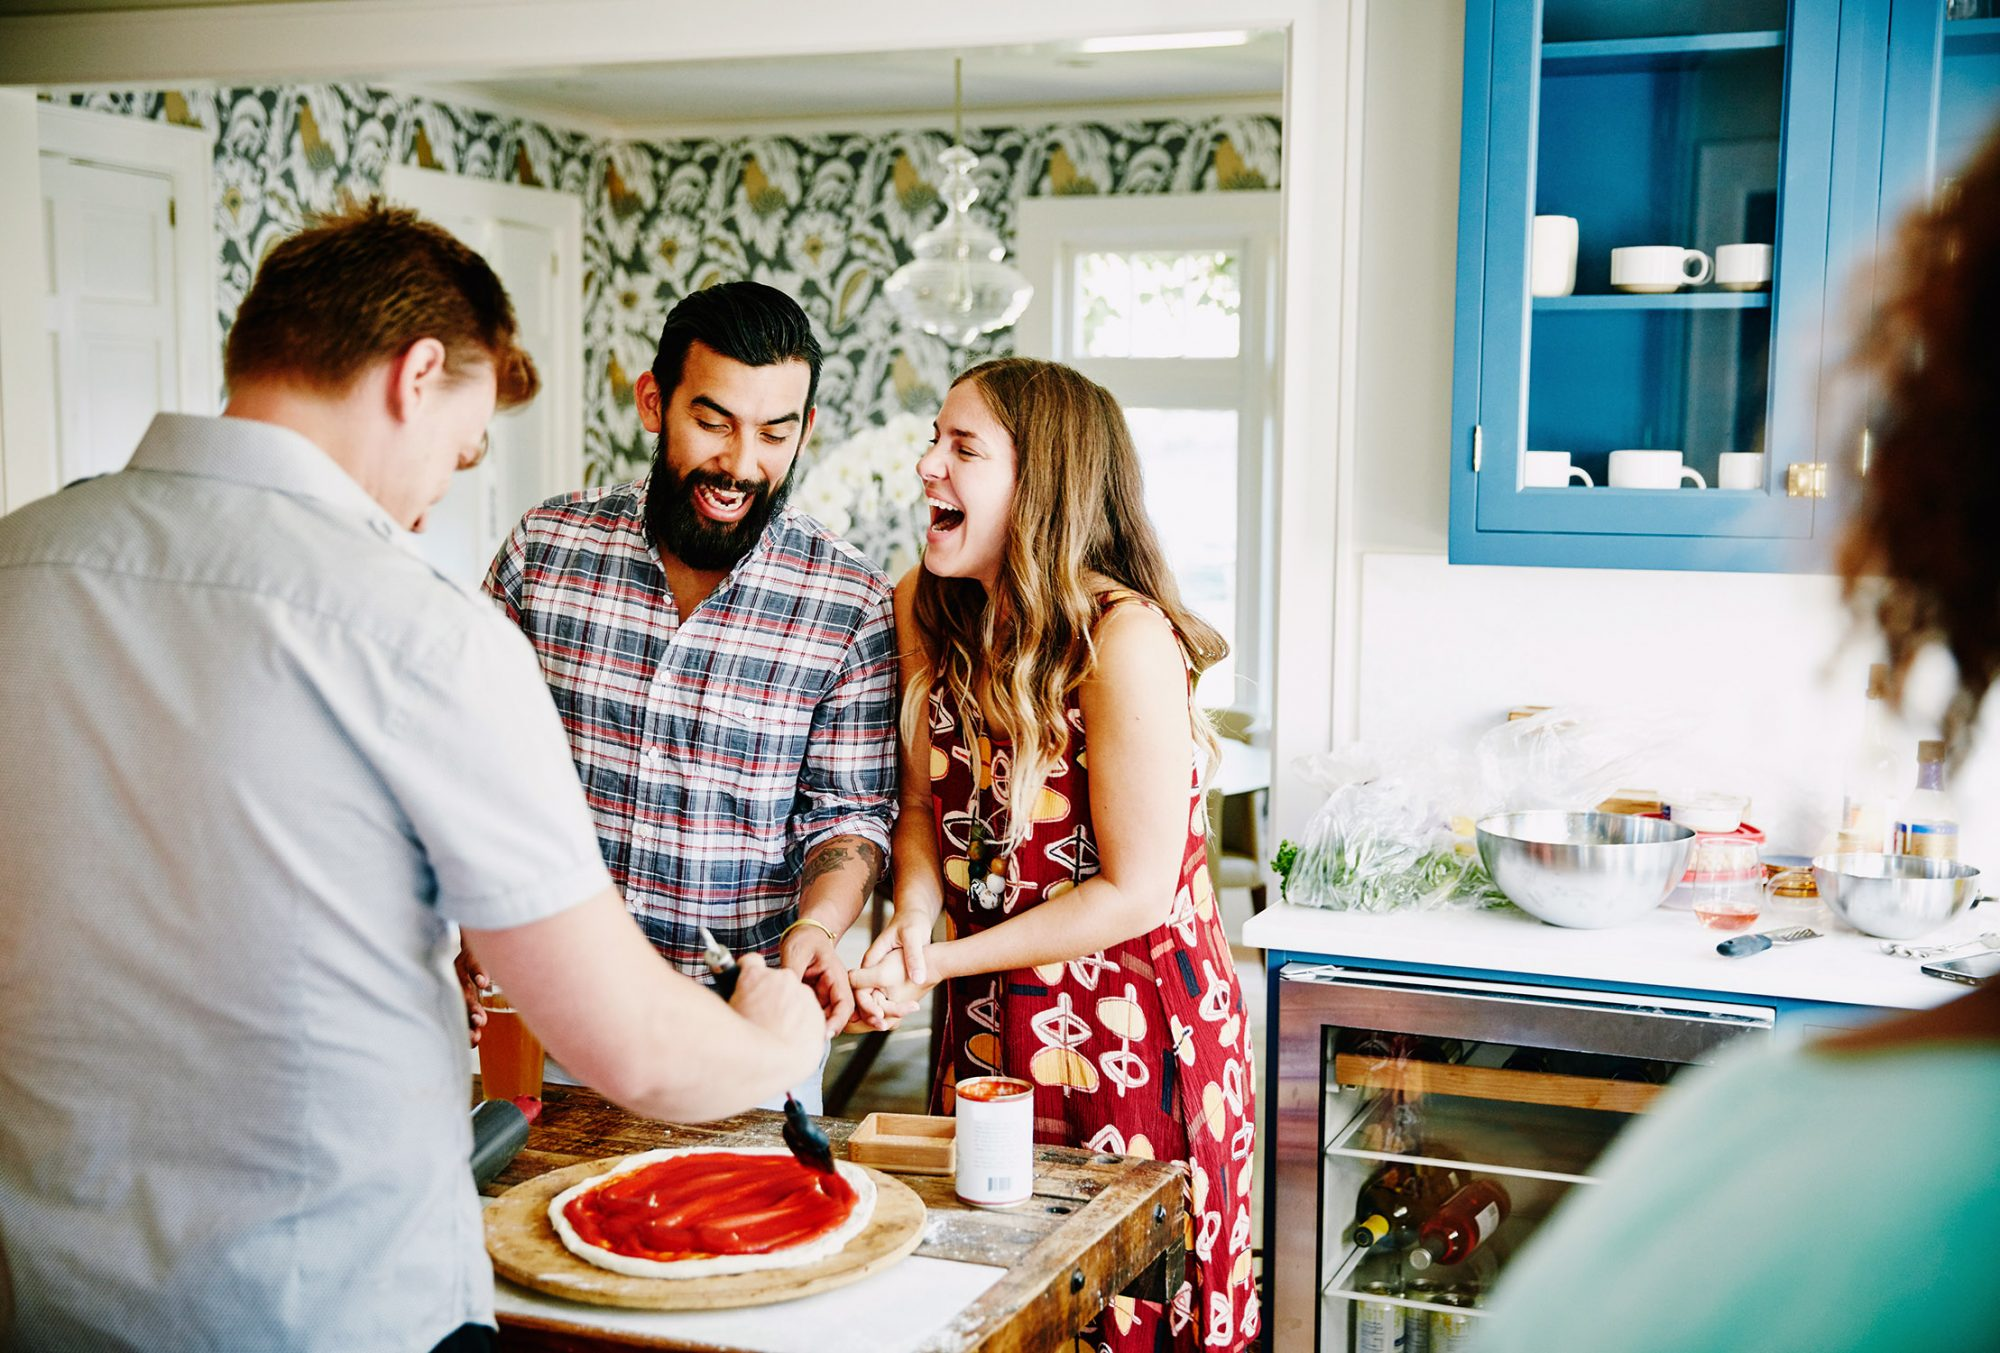 Laughing couple preparing pizza together with friends in kitchen